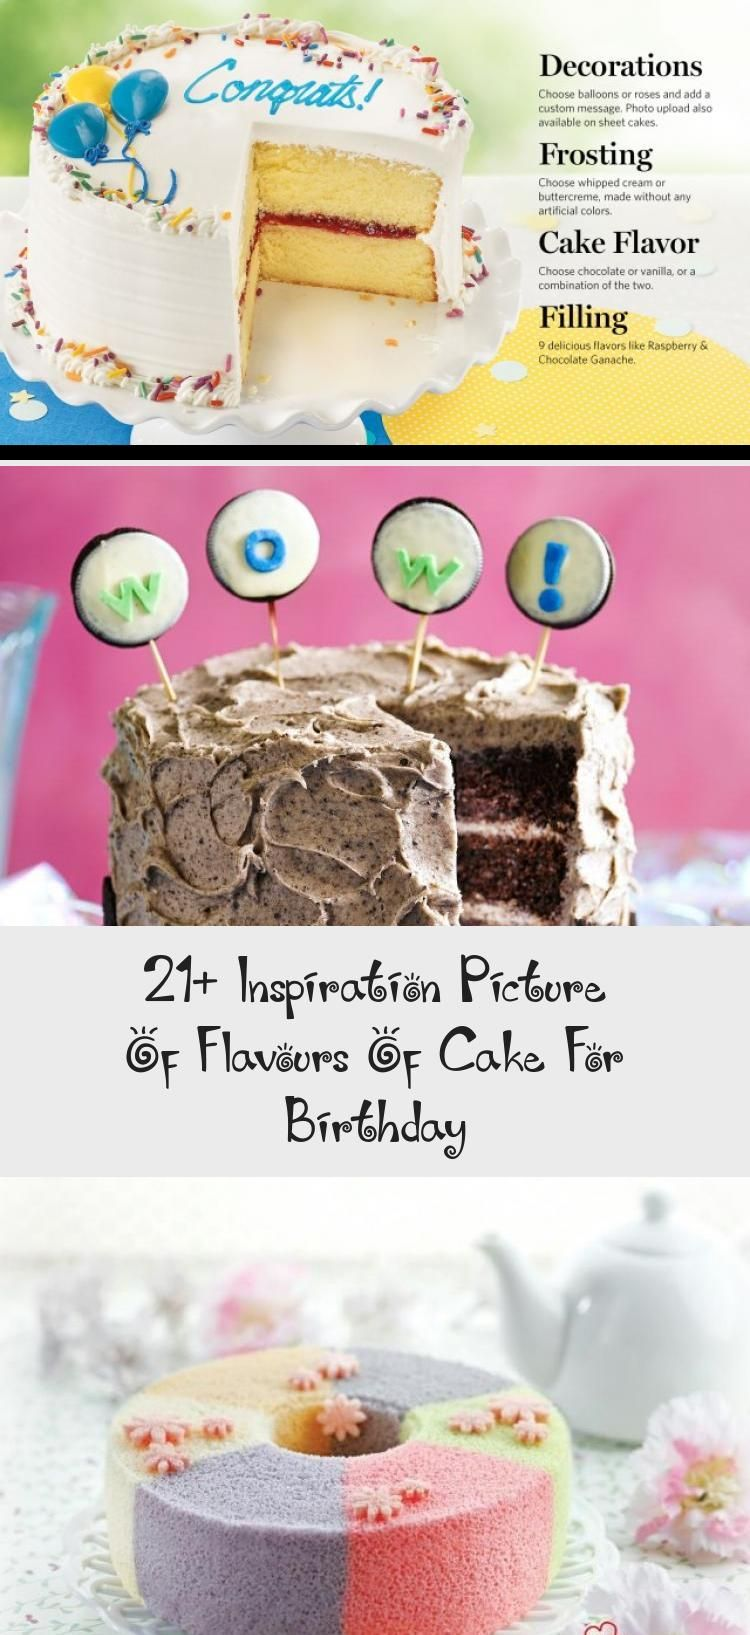 Marvelous 21 Inspiration Picture Of Flavours Of Cake For Birthday Cake Funny Birthday Cards Online Aeocydamsfinfo